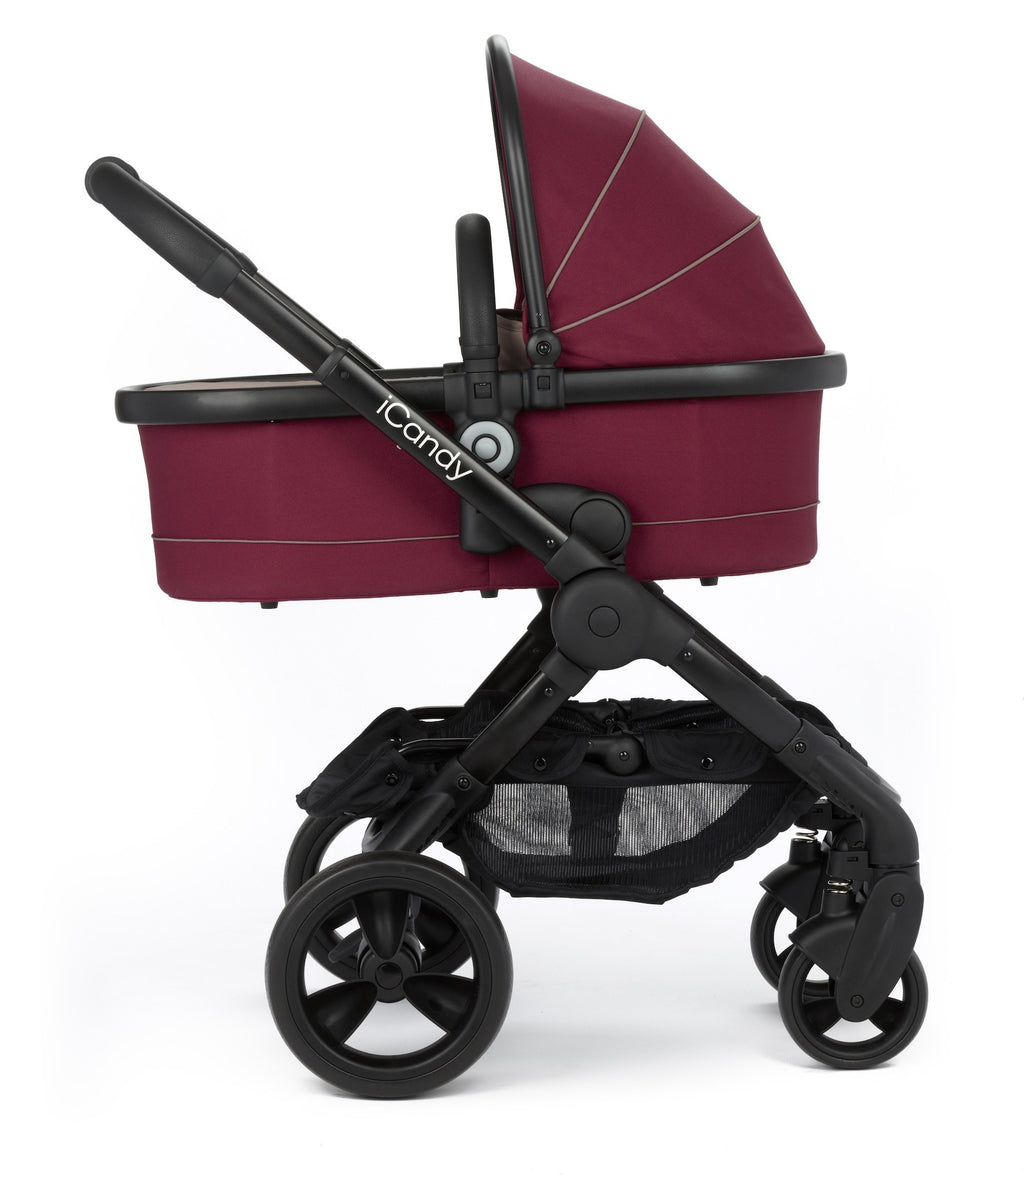 iCandy Peach Stroller with Carrycot - Claret